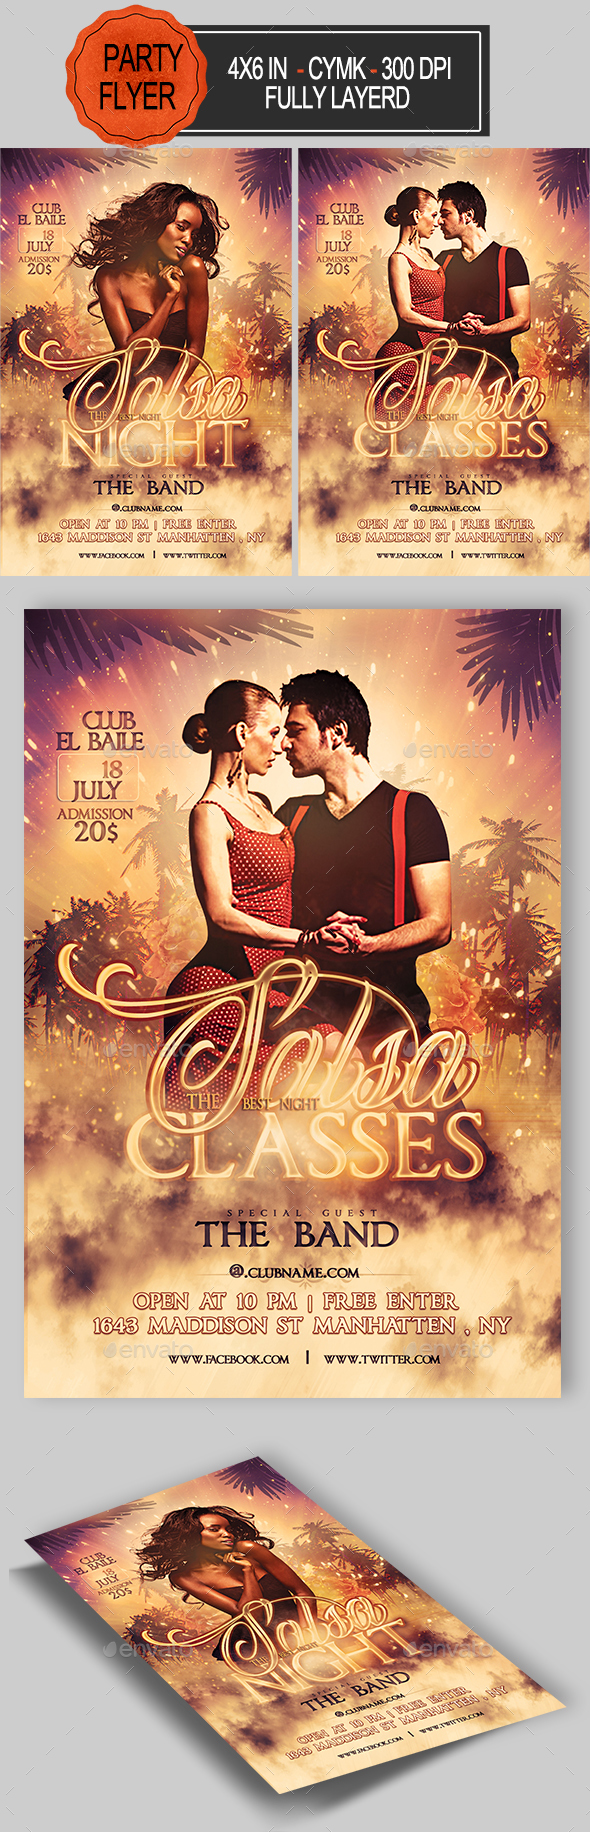 Salsa Party Flyer Template - Clubs & Parties Events